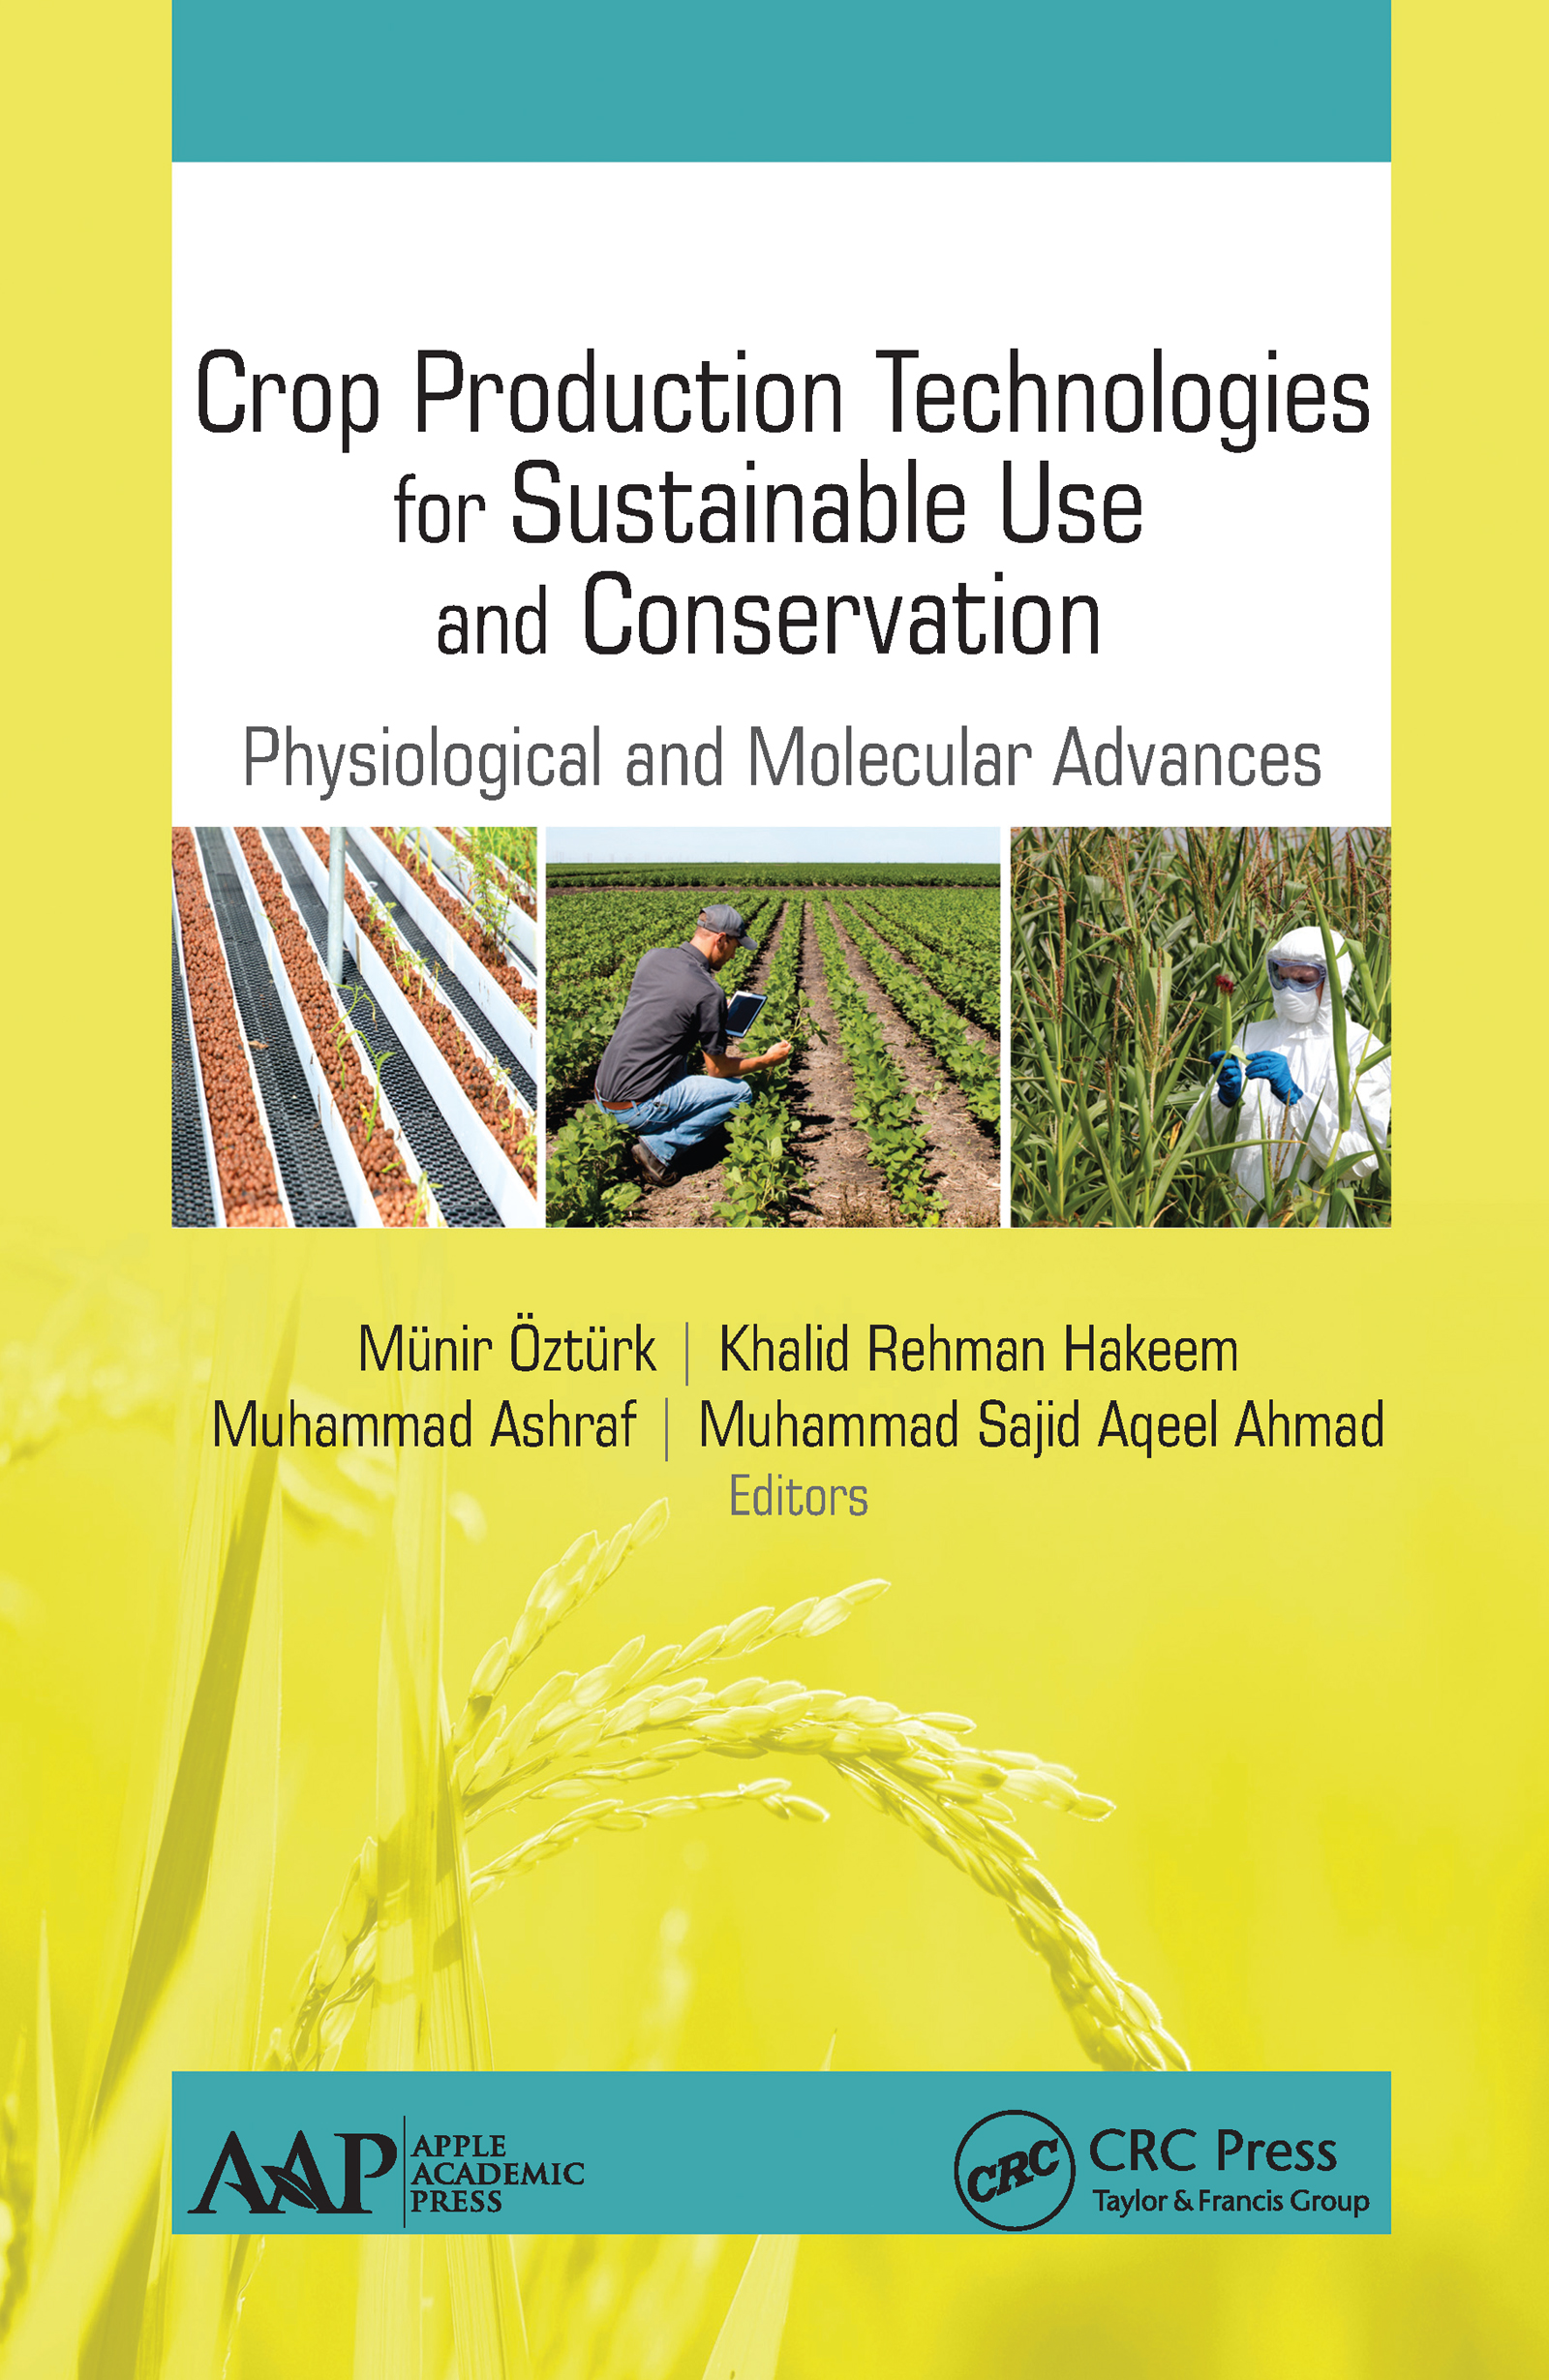 Crop Production Technologies for Sustainable Use and Conservation